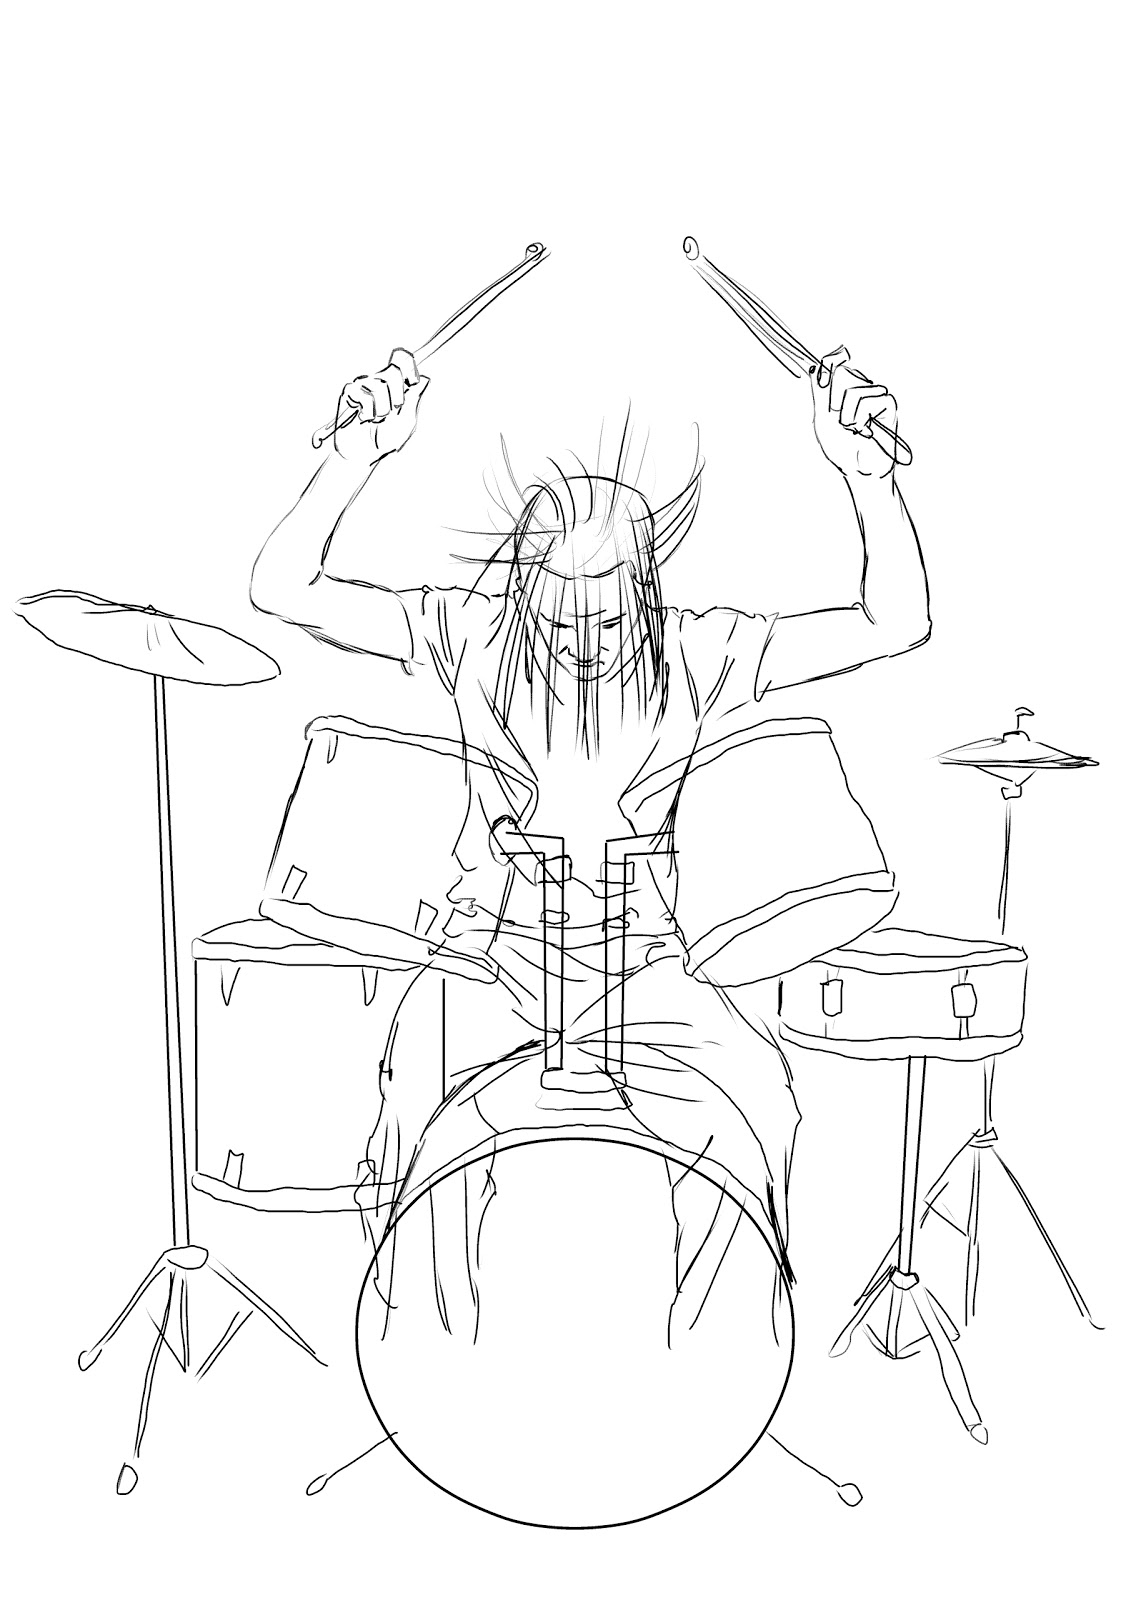 94 Simple Drums Drawing Drum Set Stock Illustrations